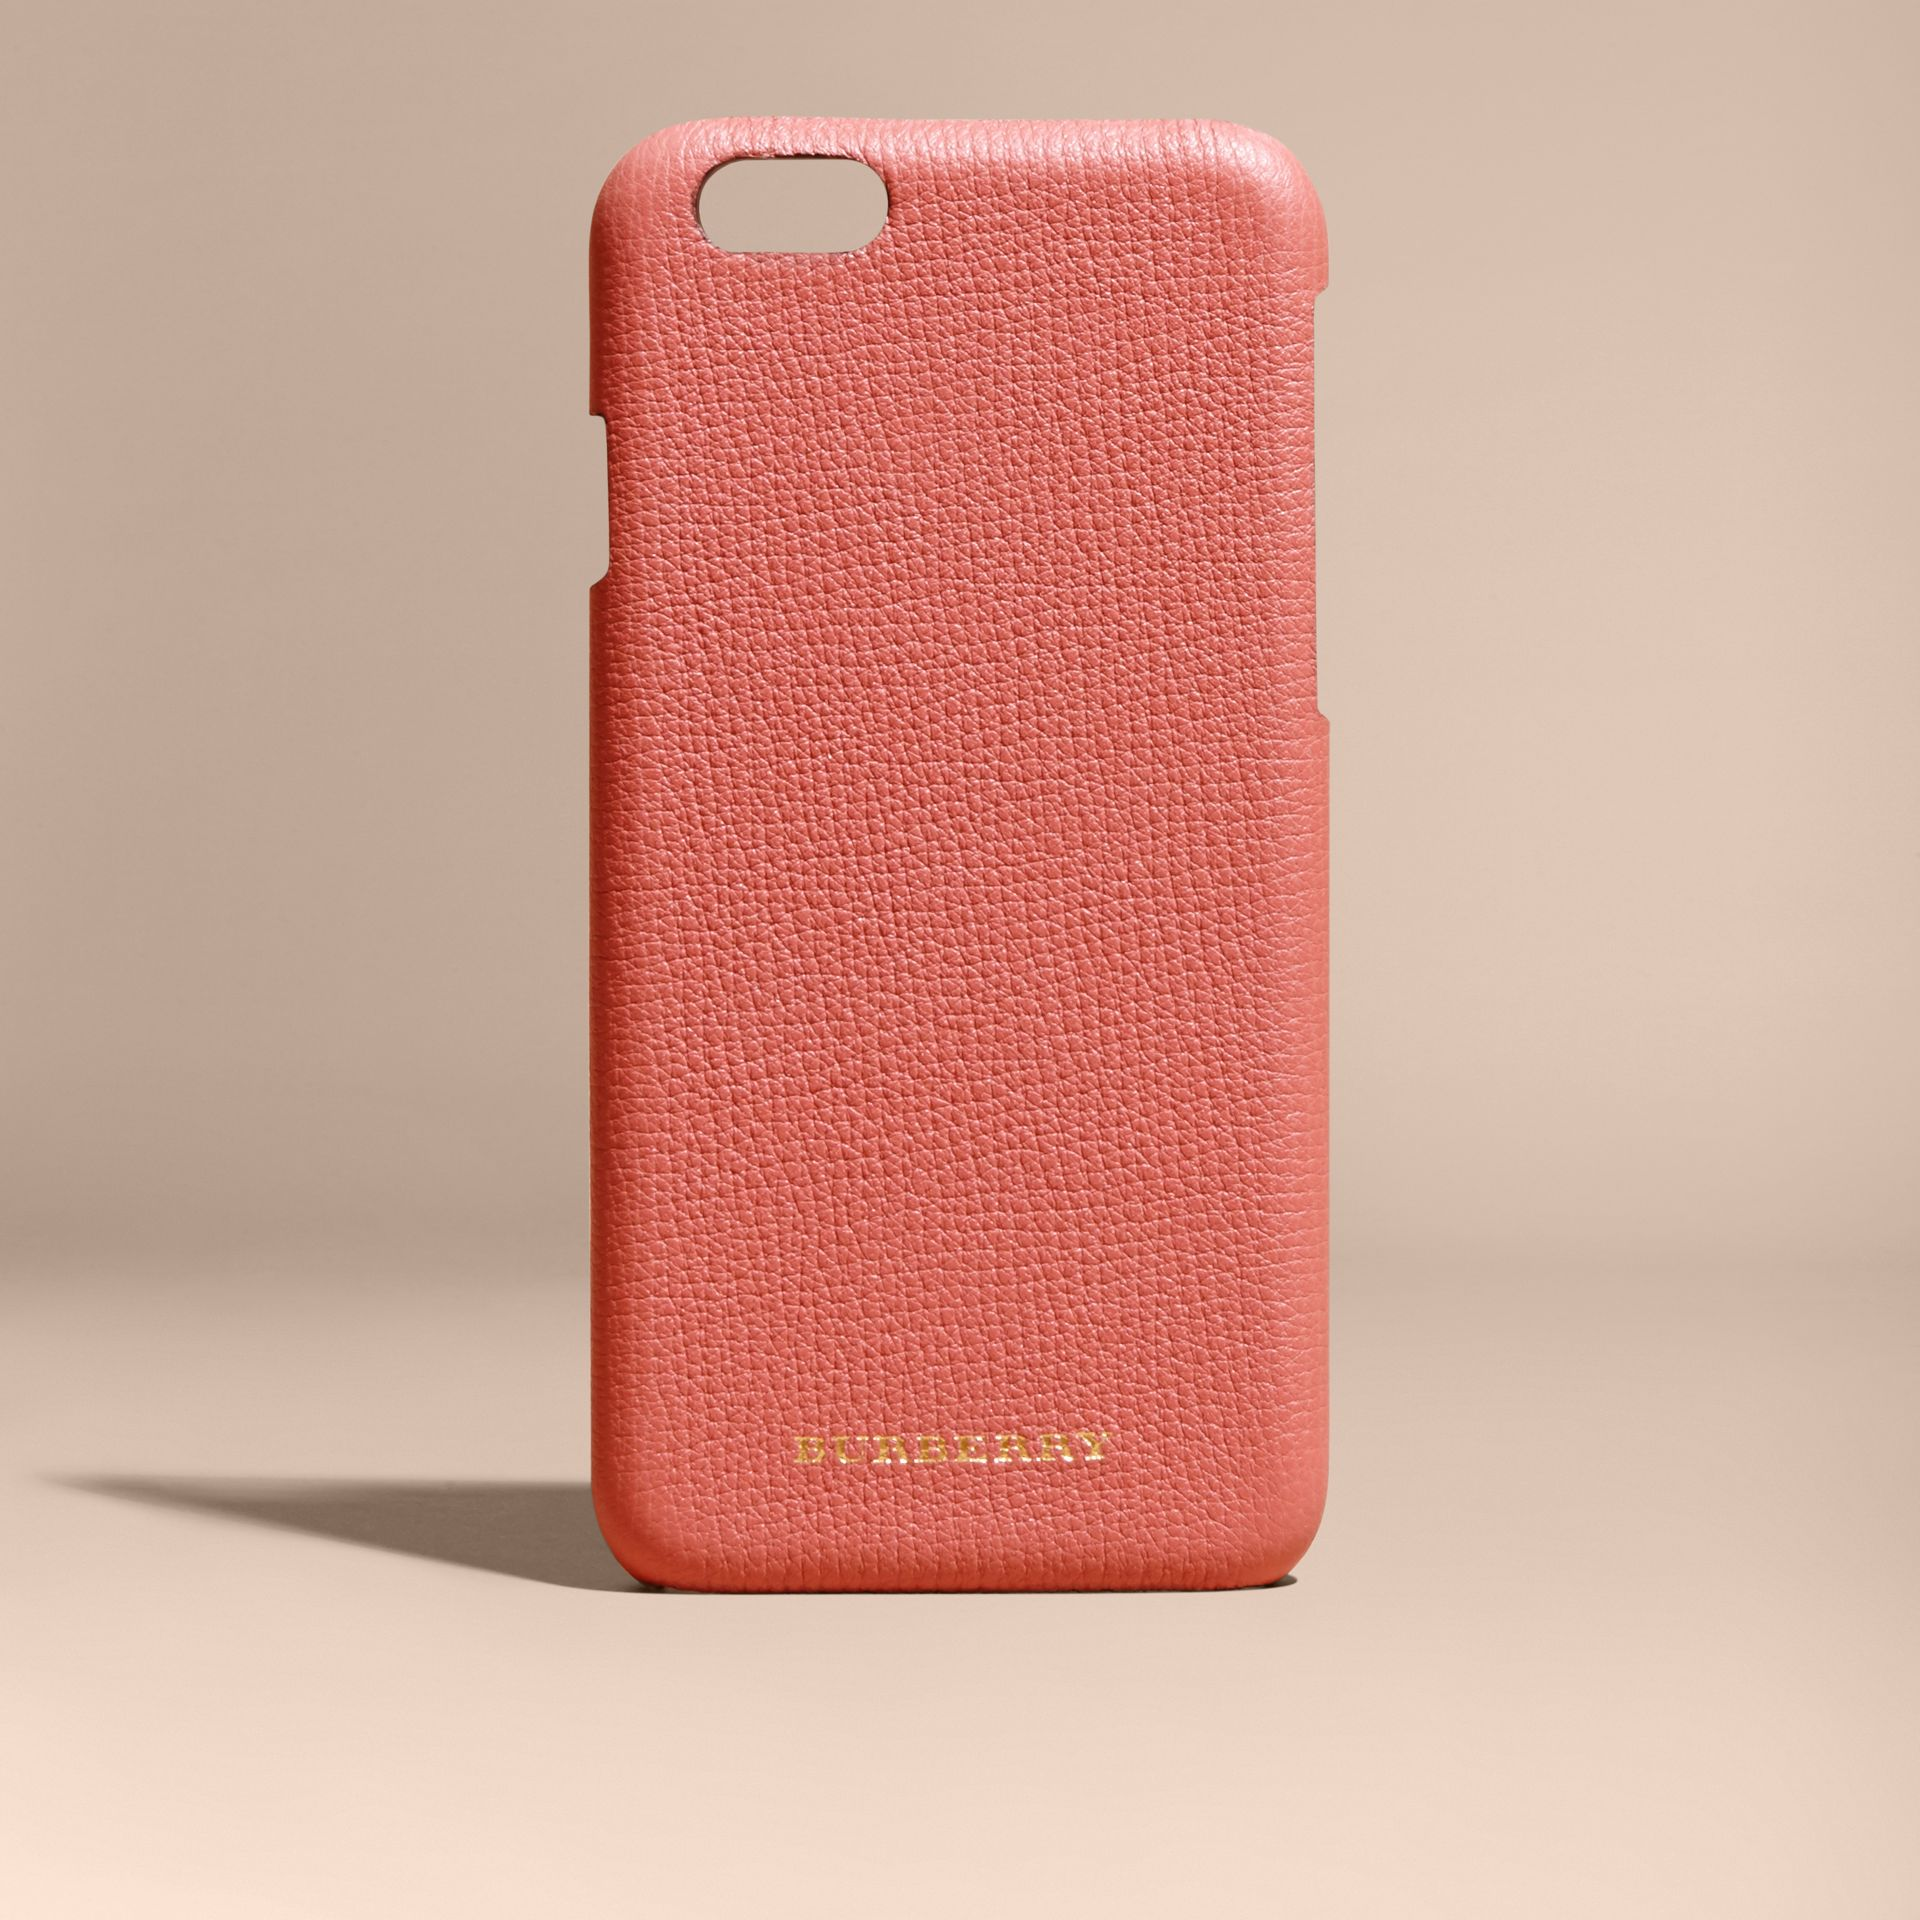 Grainy Leather iPhone 6 Case in Copper Pink - Women | Burberry - gallery image 5